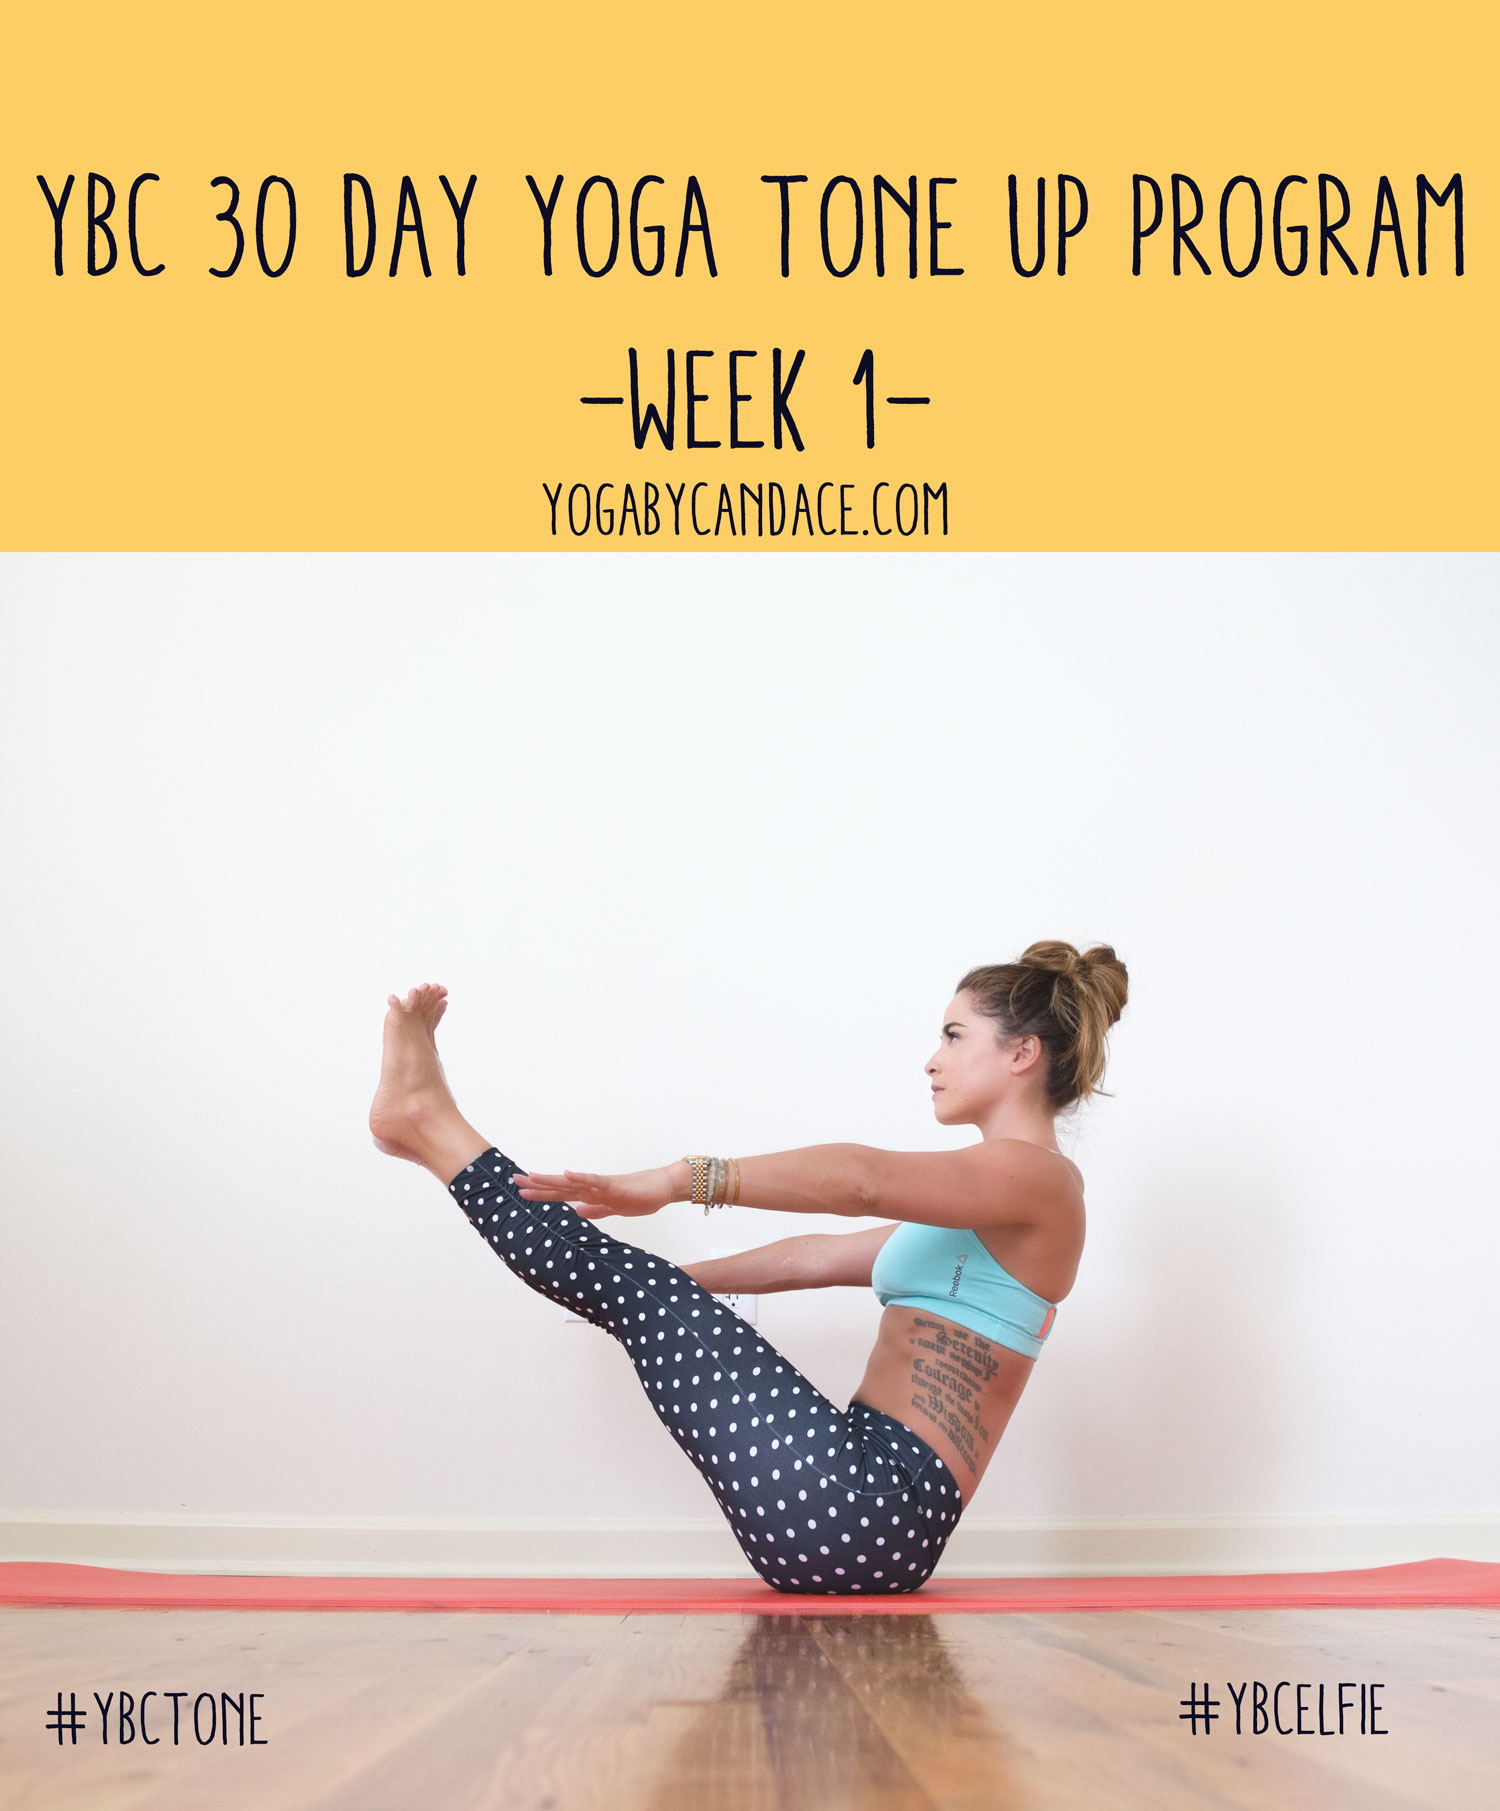 Pin now, practice later! 30 Day yoga program to tone - week 1.  Wearing:  Kira Grace leggings ,  Reebok bra .